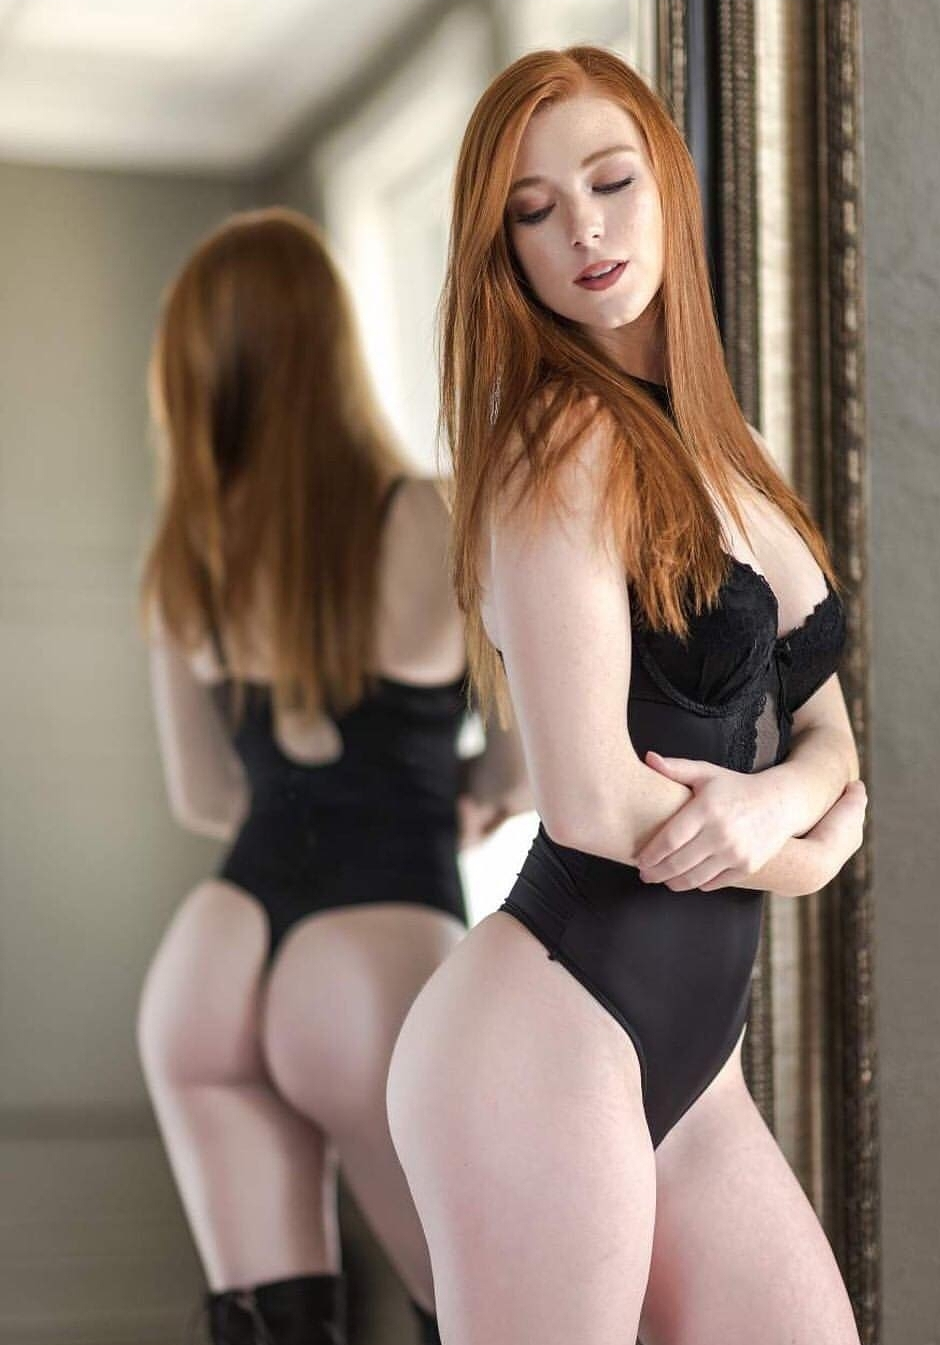 babe today something mag summer meadows amazing #ginger #redhead #redhair #nonnude #megandeluca #perfection #iminlove #wifematerial